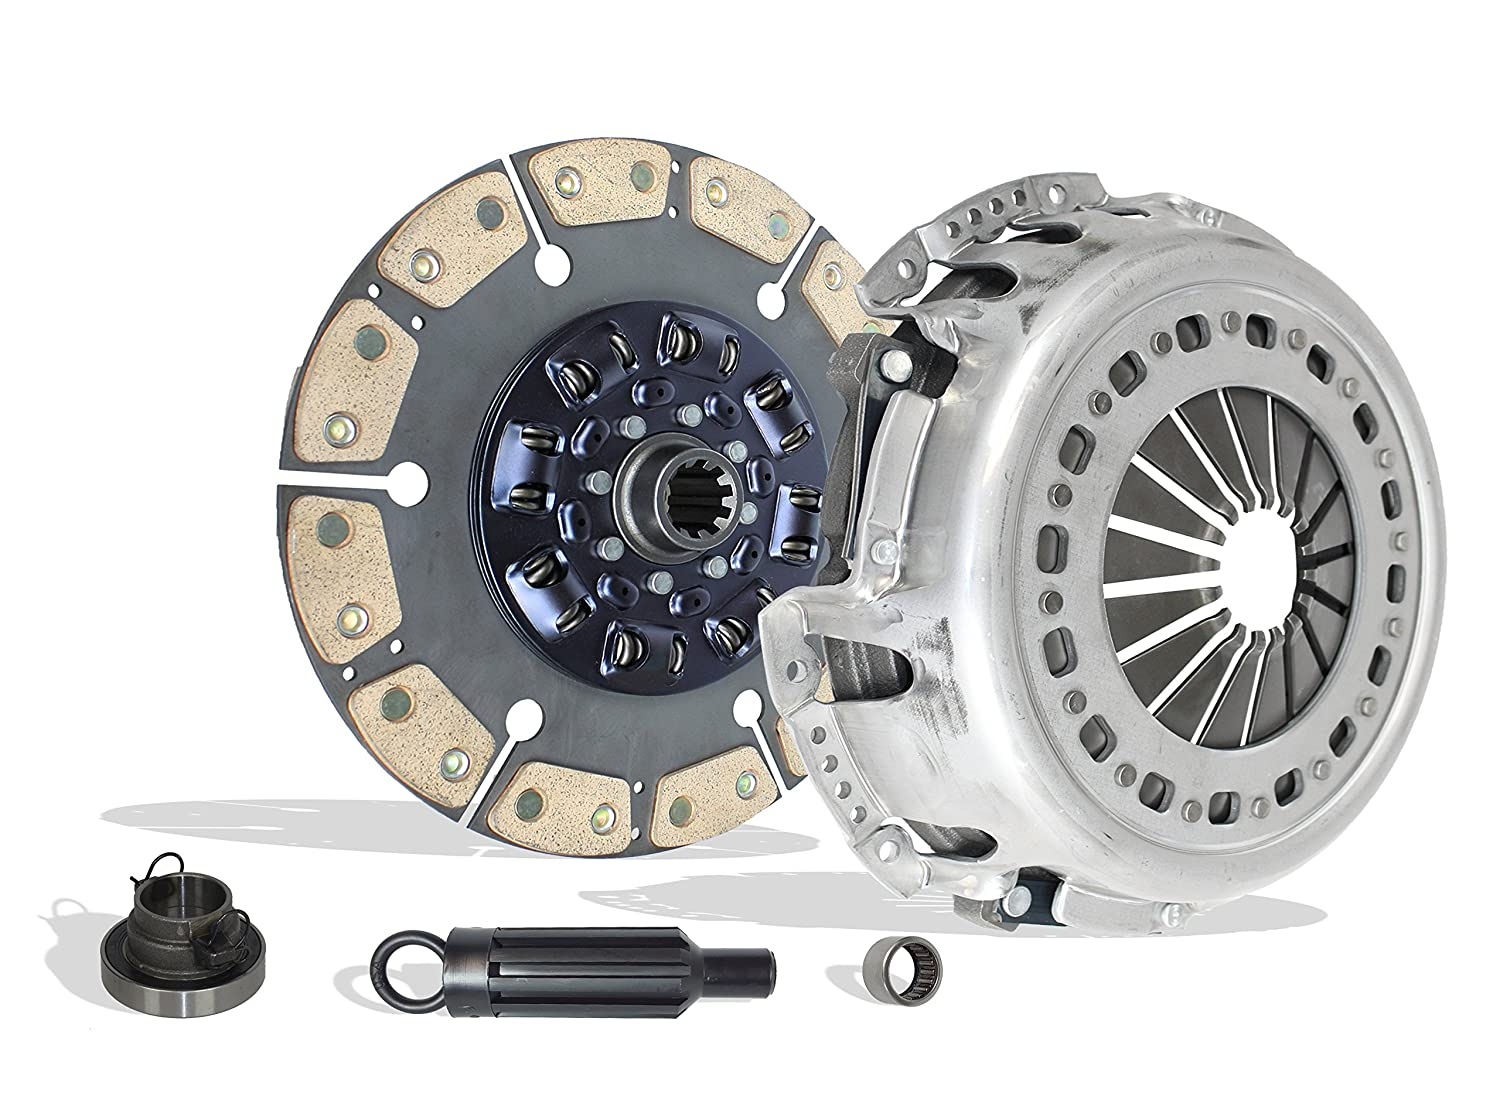 southeast-clutch etapa 3 Kit de embrague Dodge Ram 2500 3500 5.9l Cummins Diesel 6 velocidad: Amazon.es: Coche y moto